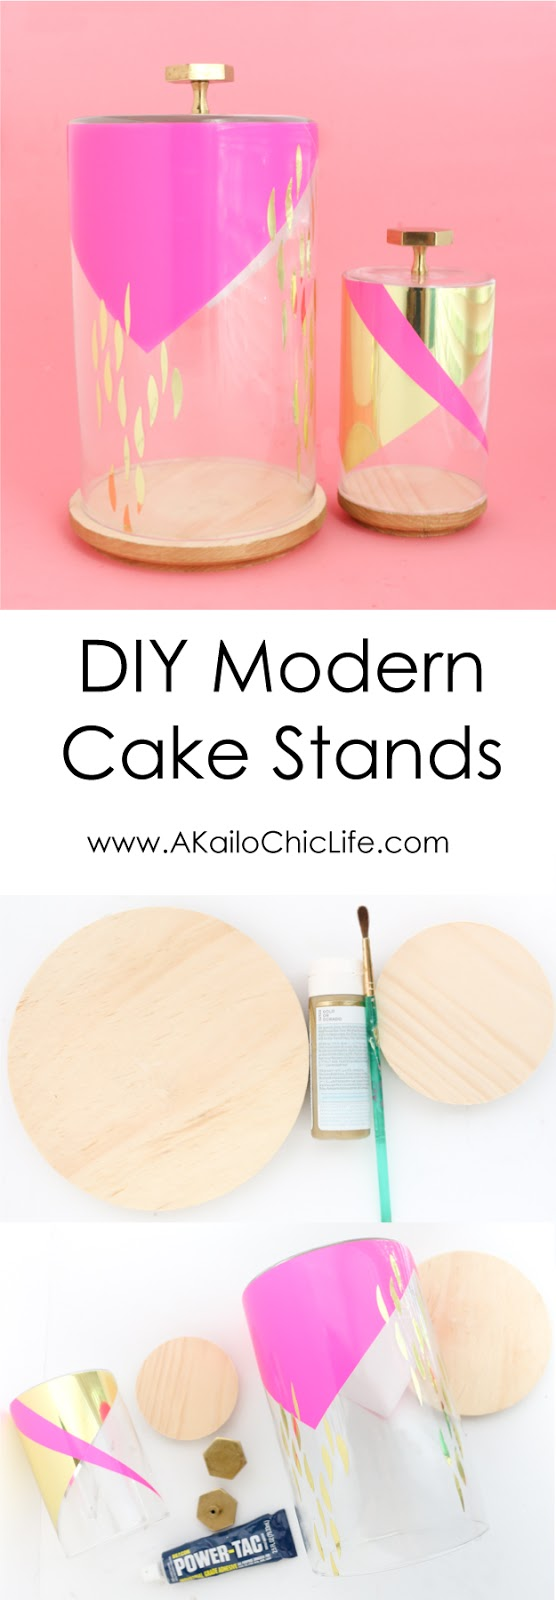 Learn how to make your own DIY Cake Stands, decorative cloche, or dessert stands using craft store supplies and adhesive vinyl in gold and pink - easy craft - diy home decor - Target and Oh Joy